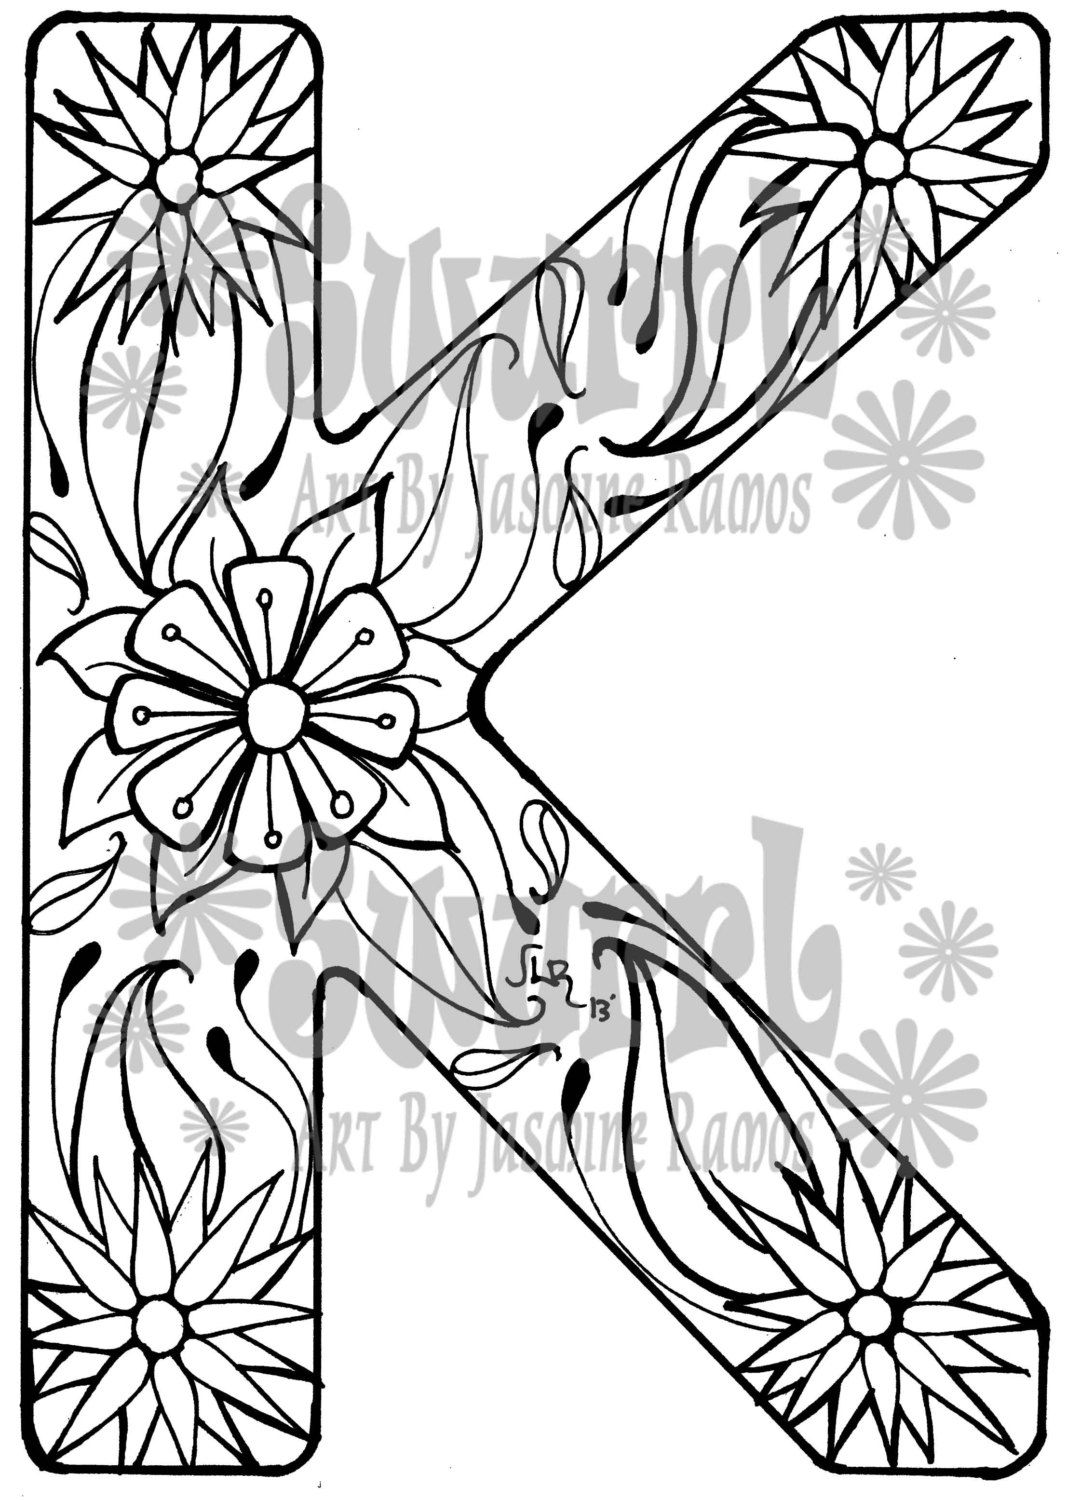 K For Kettle Coloring Page With Handwriting Practice Kids